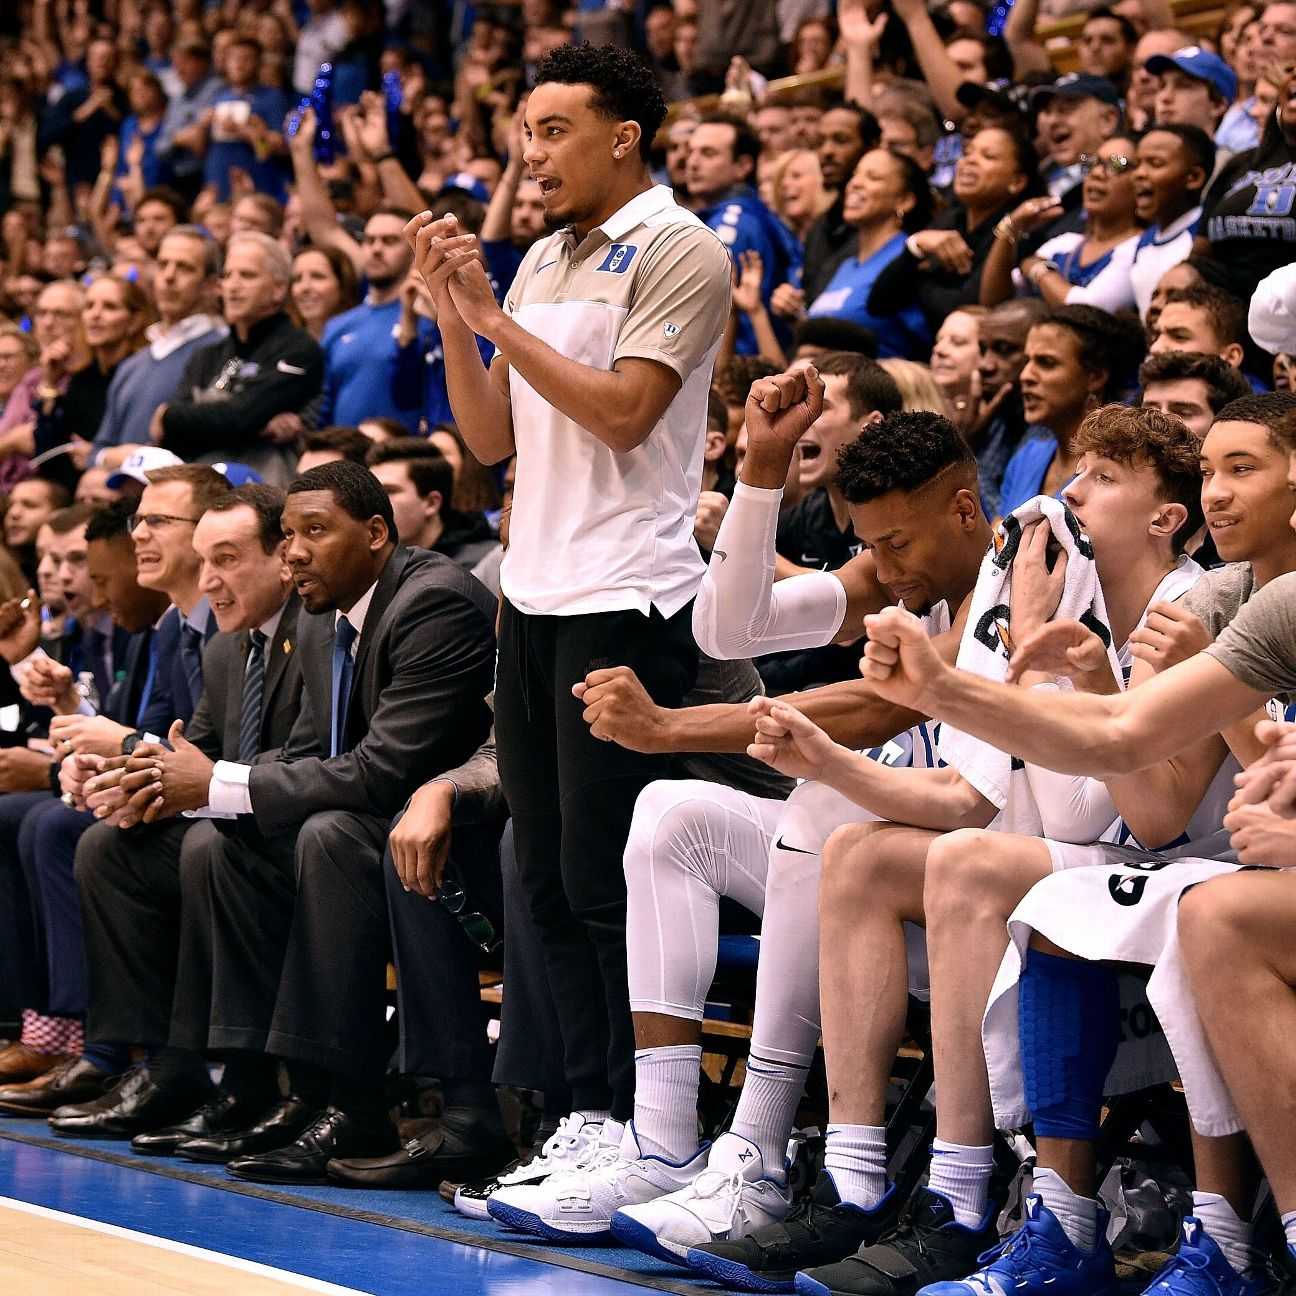 After knocking Virginia from the ranks of the undefeated Saturday, Duke coach Mike Krzyzewski said it was decided a day earlier that injured point guard Tre Jones wasn't healthy enough to face the Cavaliers.